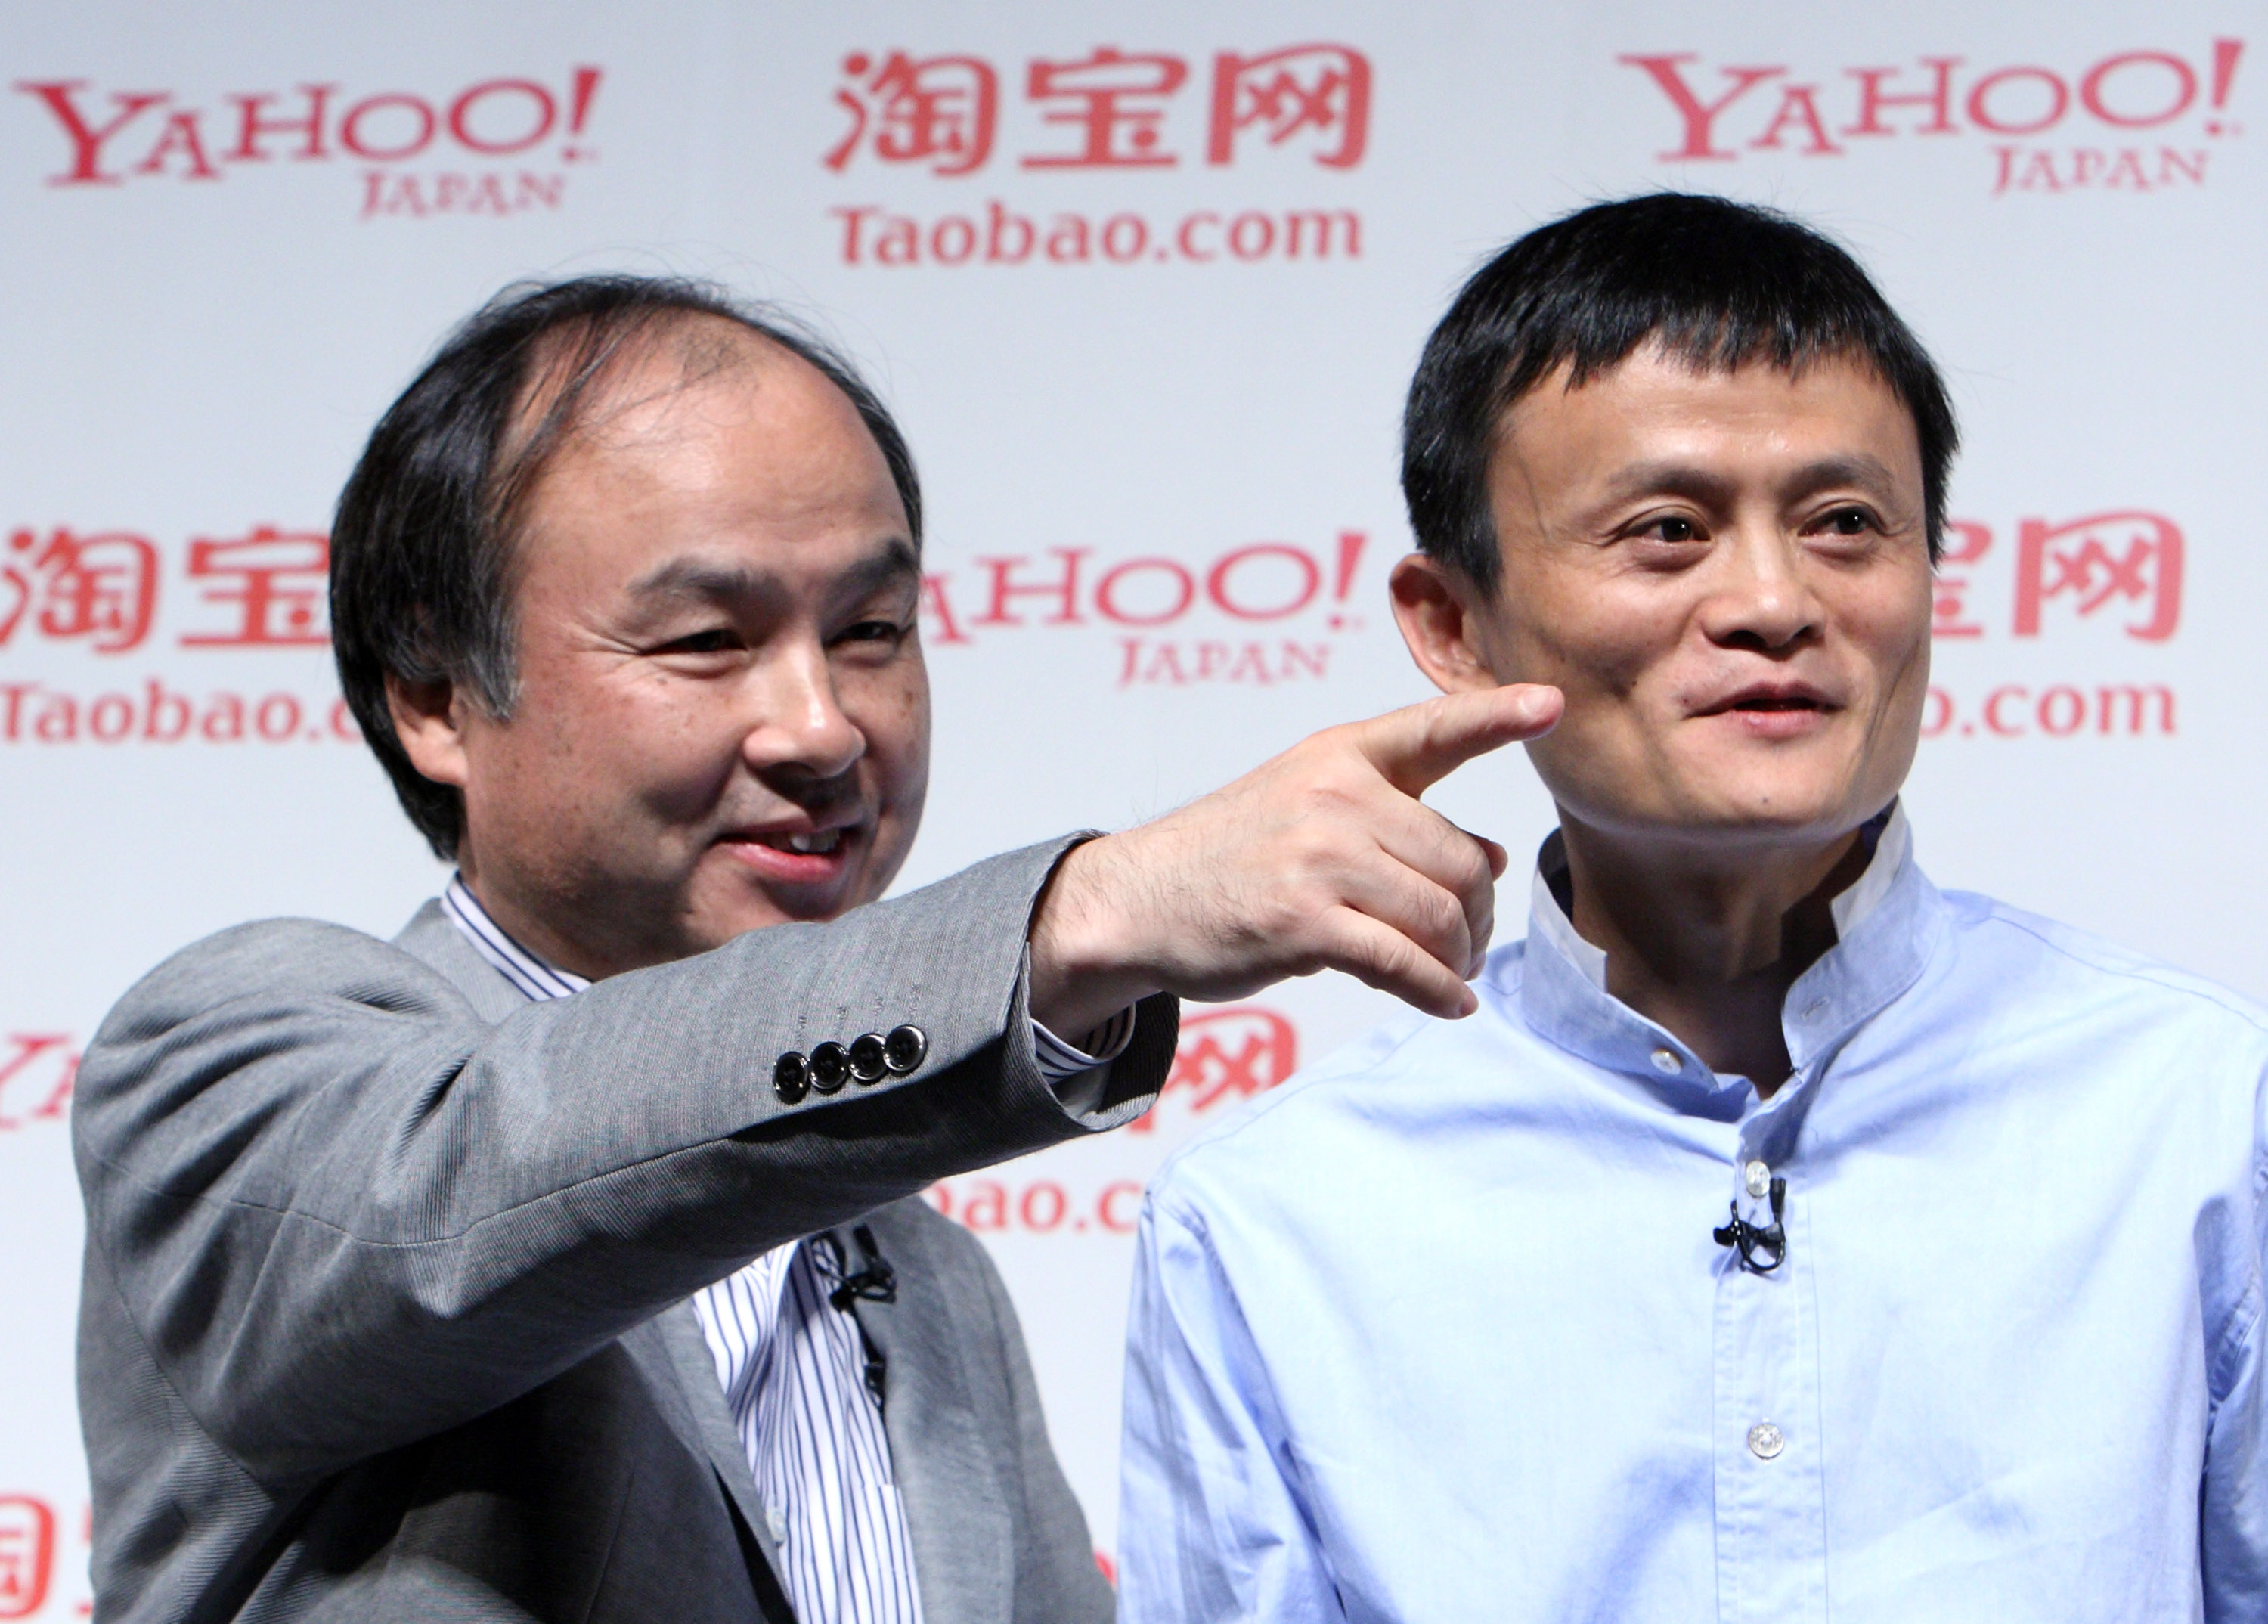 Conference Between Alibaba Group CEO Jack Ma & Softbank CEO Masayoshi Son (Image Credits : Bloomberg.com)